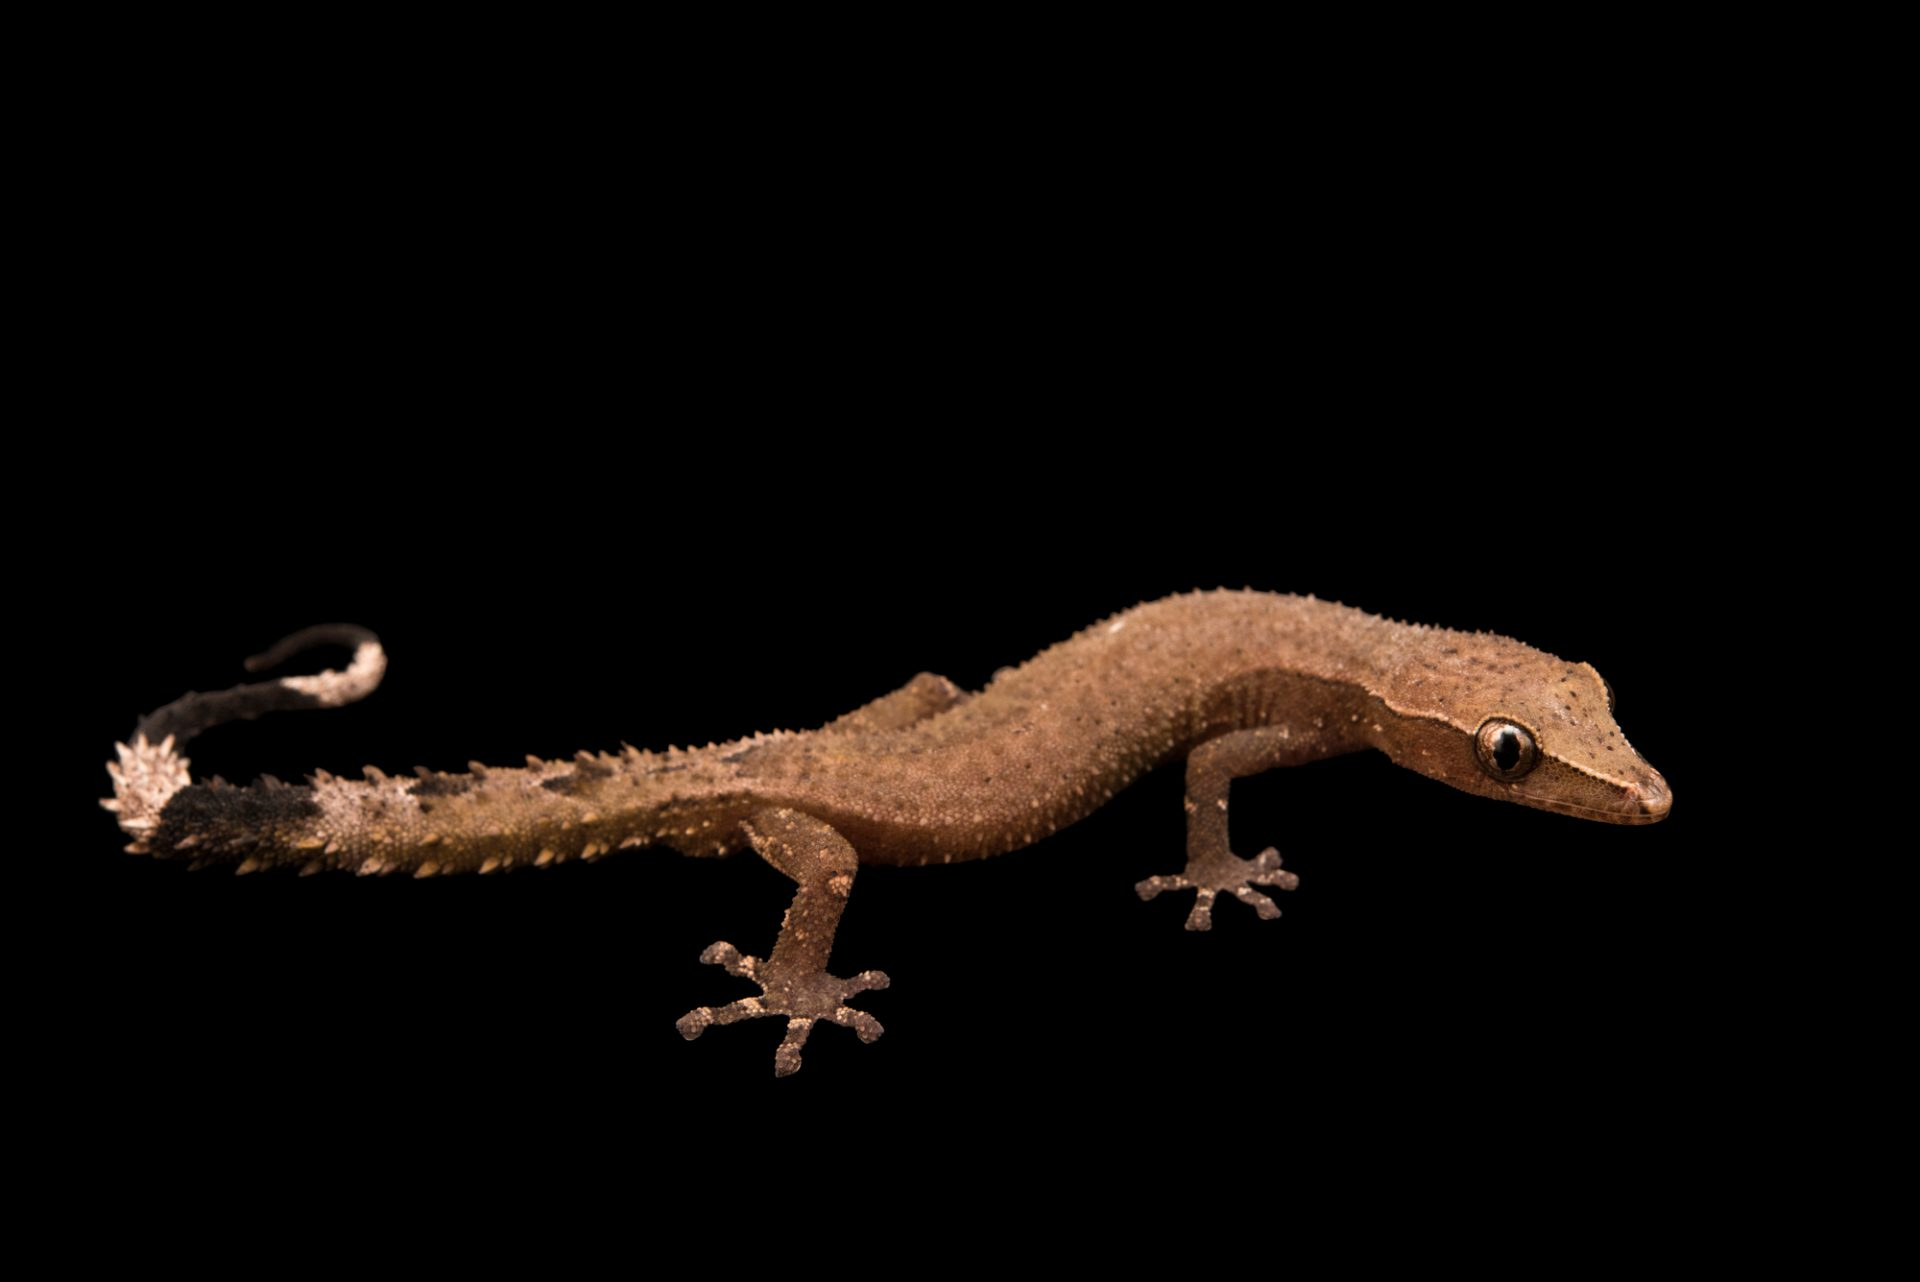 Photo: Madagascar clawless gecko (Ebenavia inunguis) from a private collection.